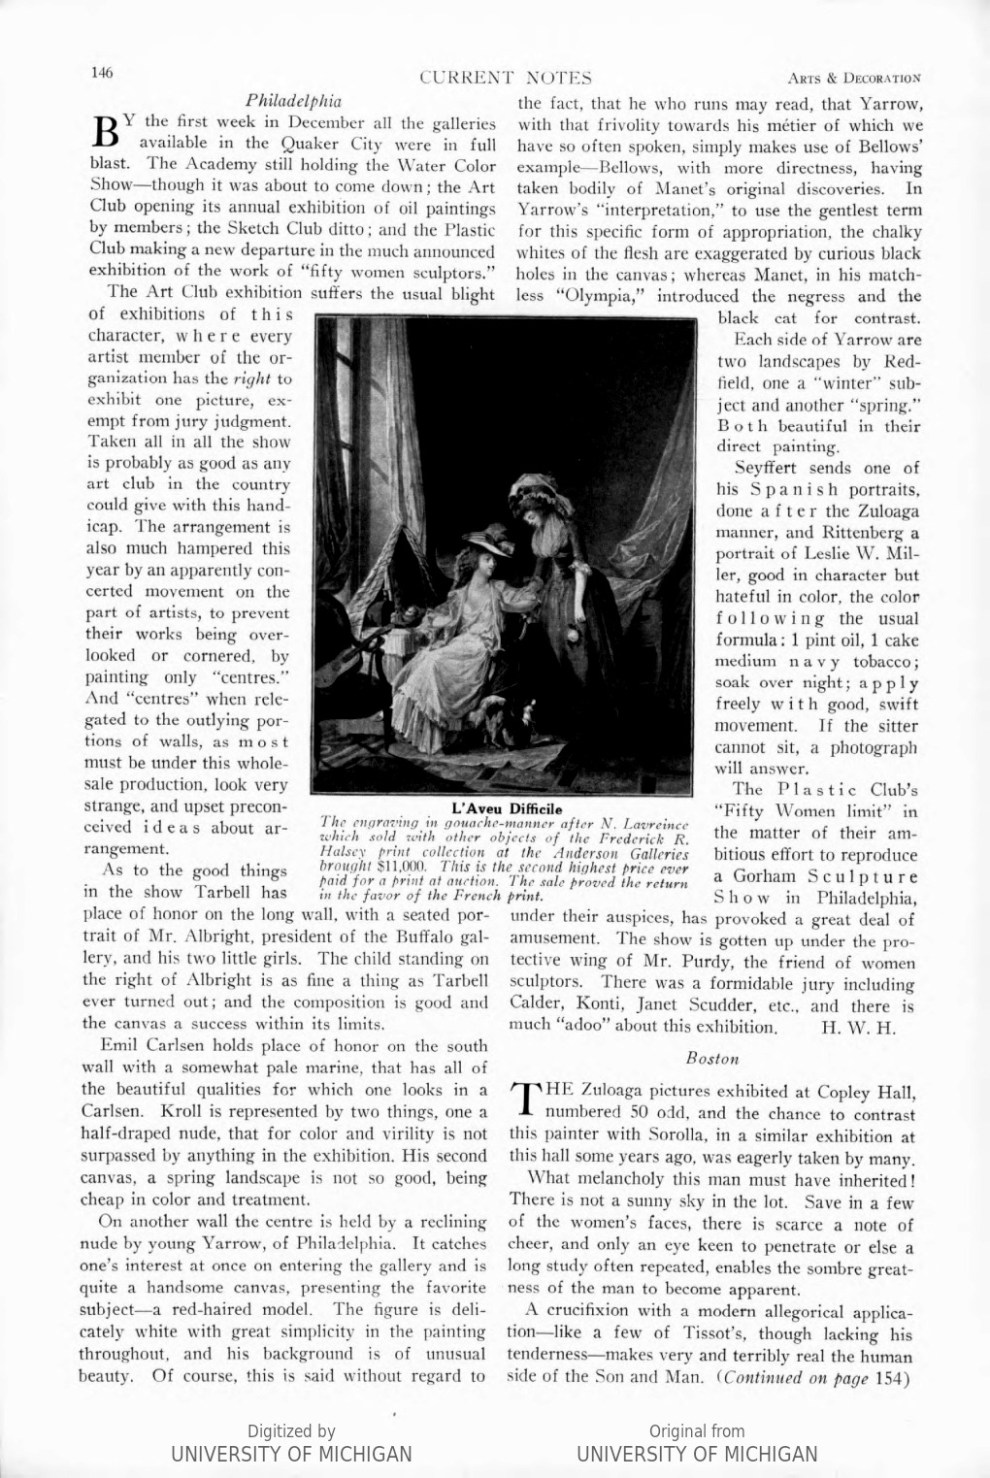 """Arts & Decoration, New York, NY, """"Current Notes"""", Volume 7, Number 3, January, 1917, page 146, not illustrated"""